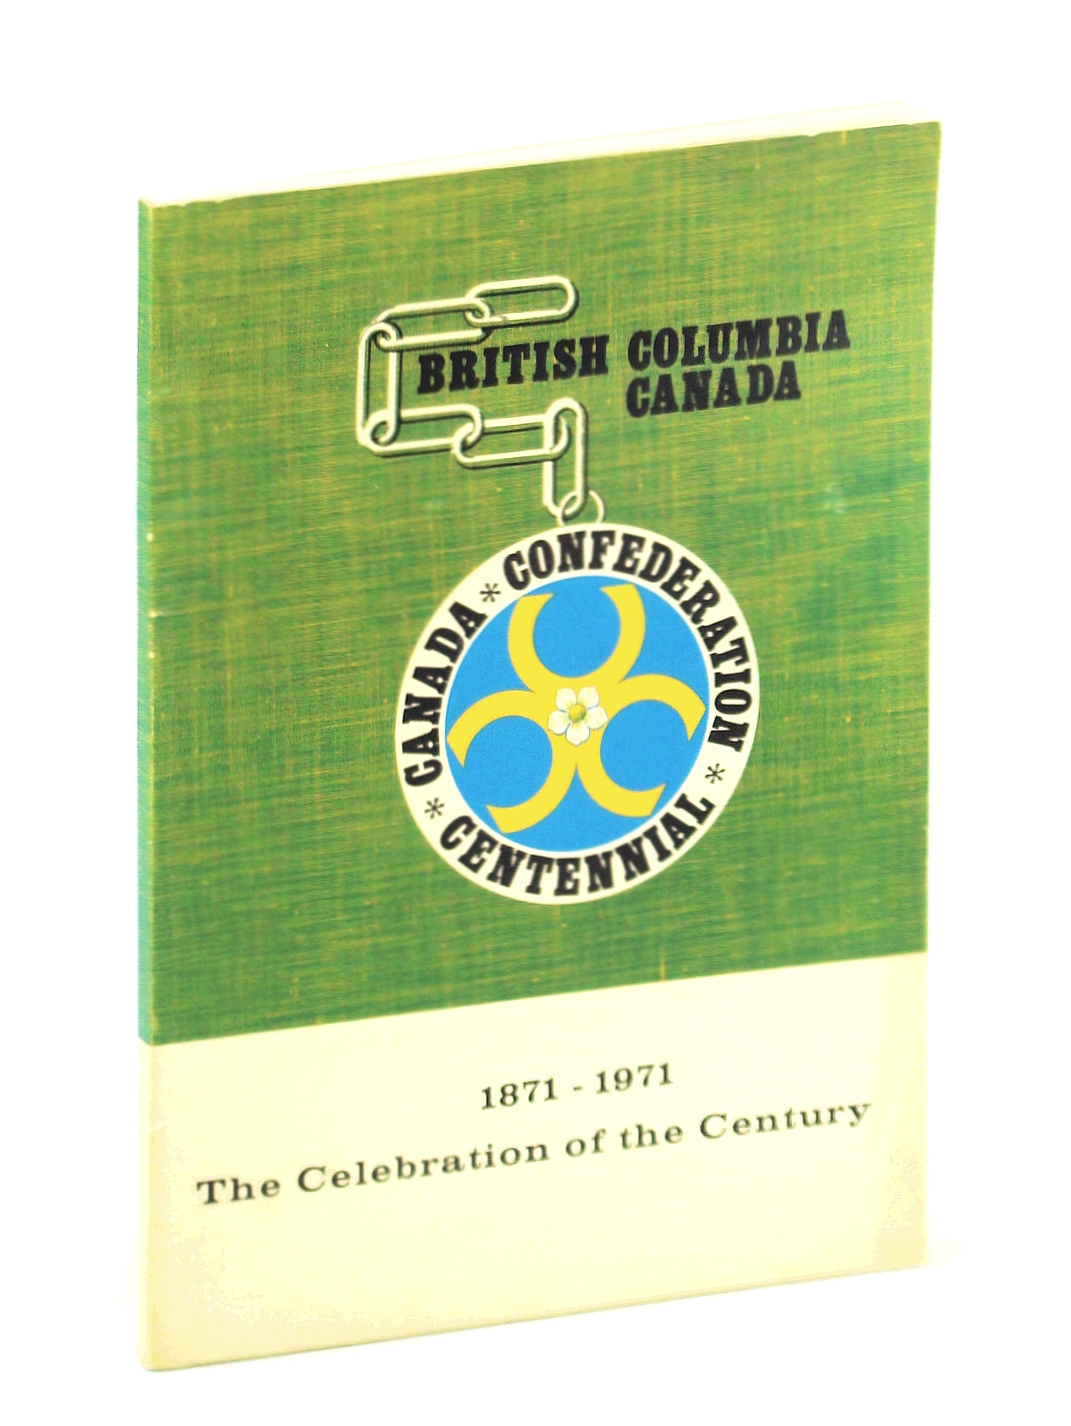 Image for The Celebration of the Century 1871 - 1971